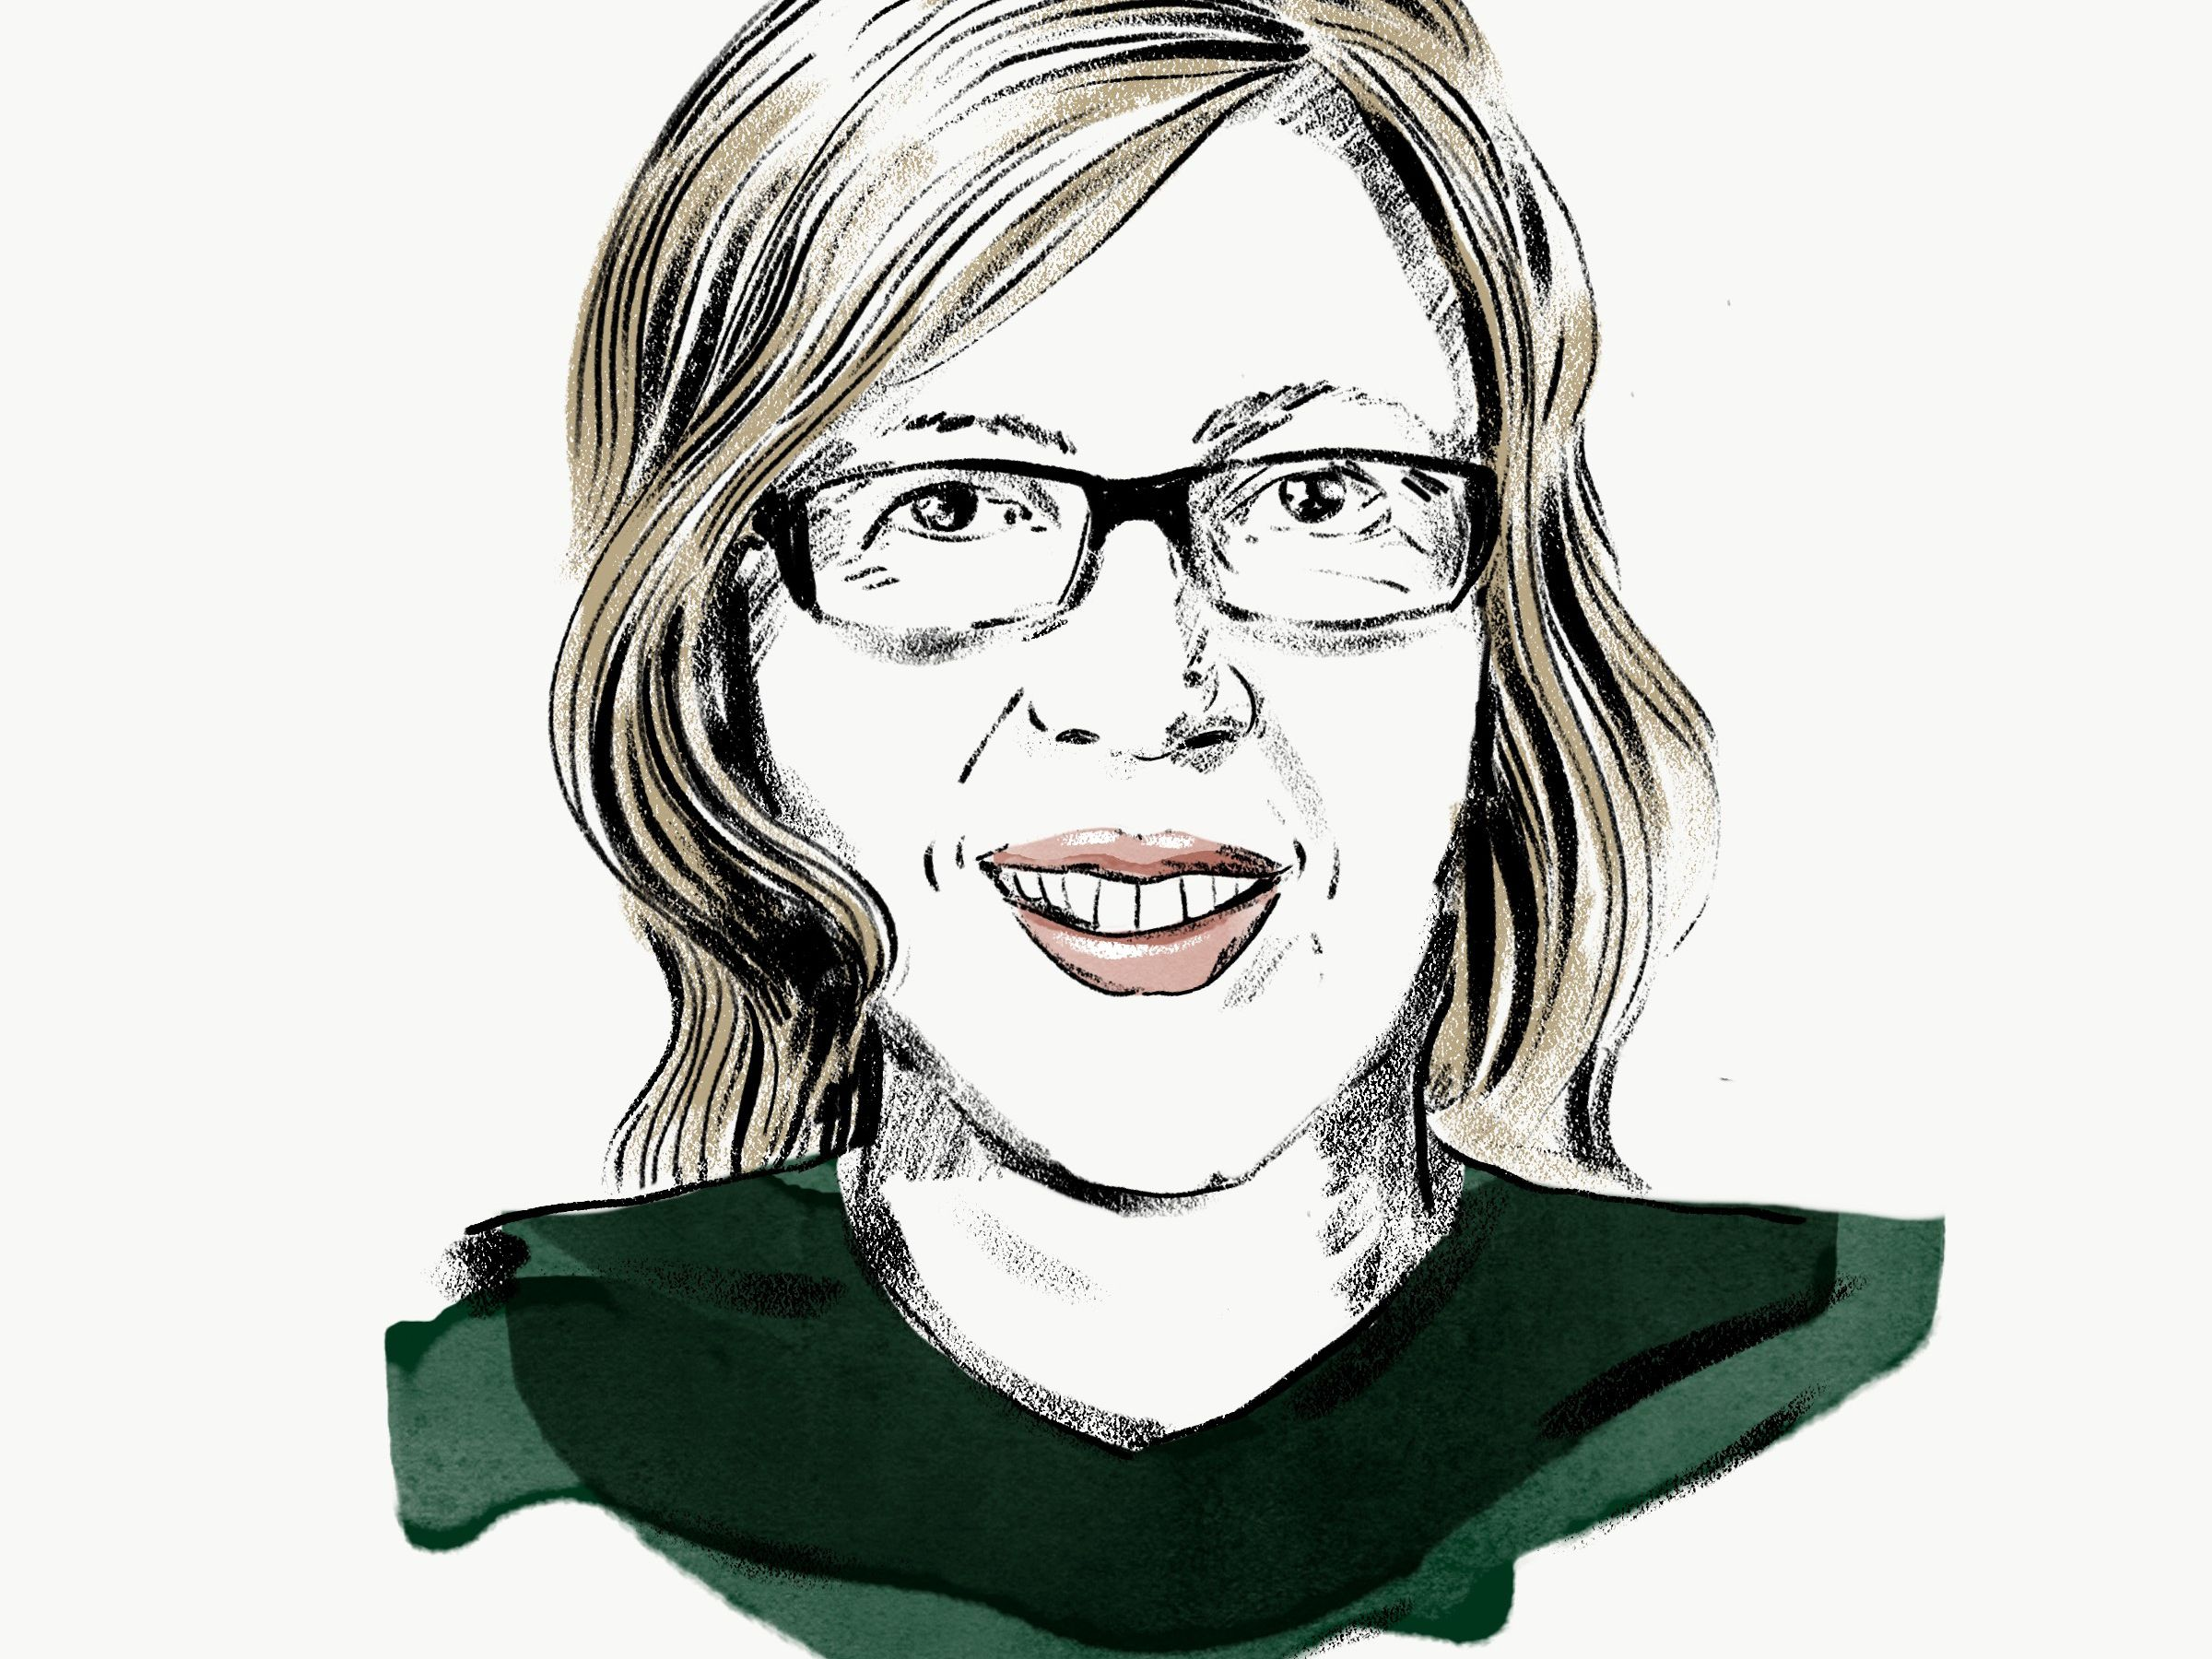 825ce3d2ebd Elizabeth May plans a green wedding - The Globe and Mail